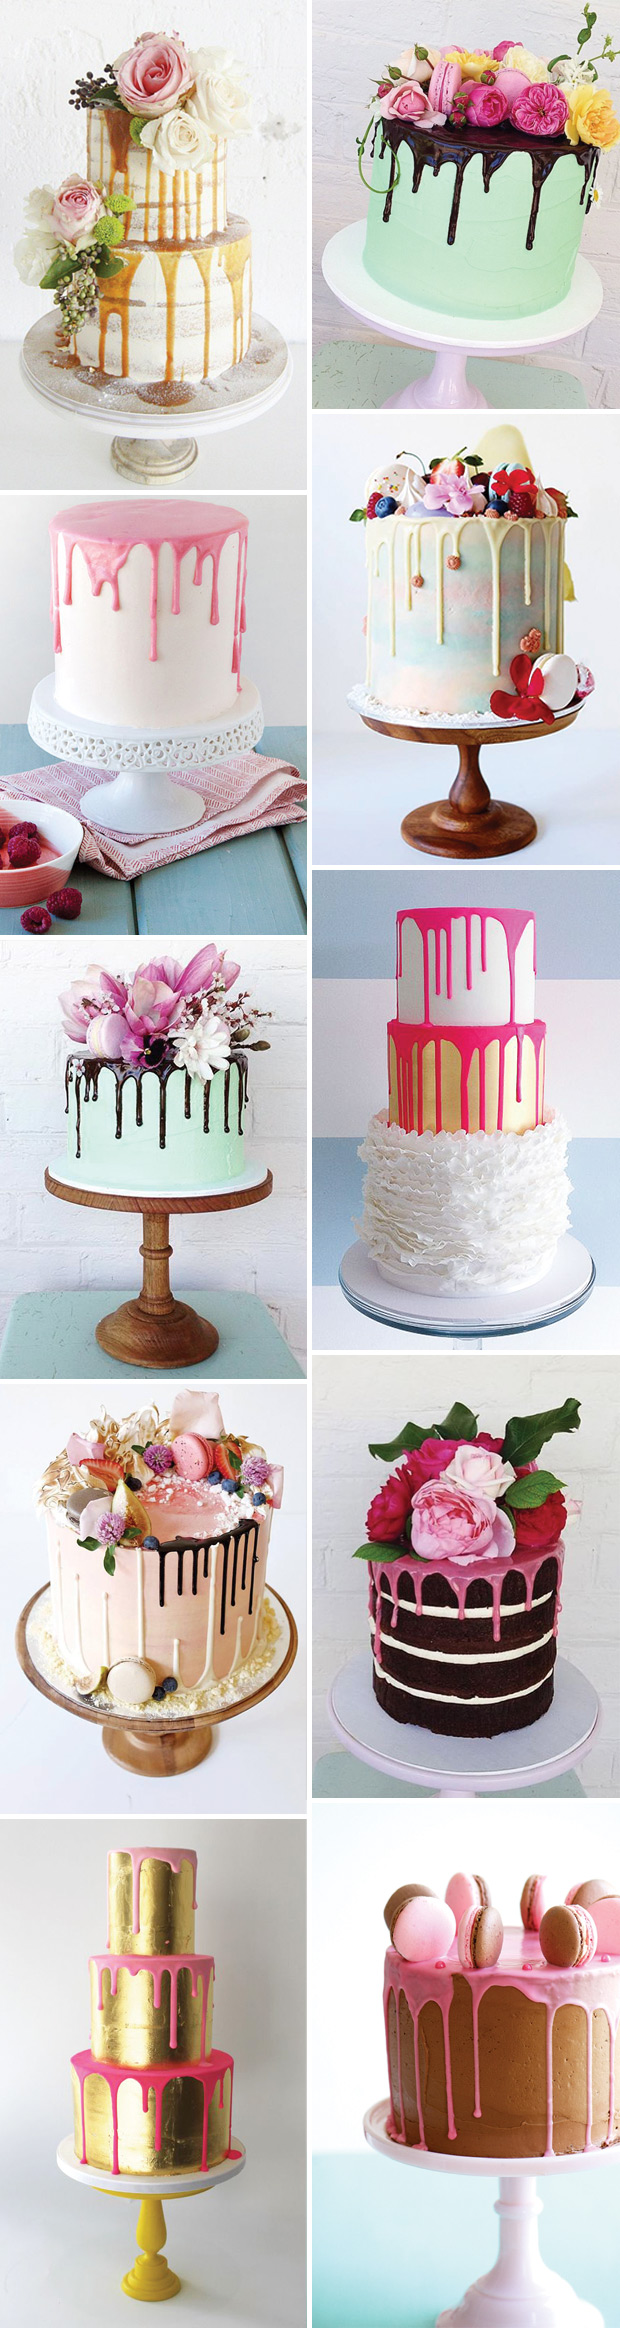 Colour-drip-wedding-cakes.jpg